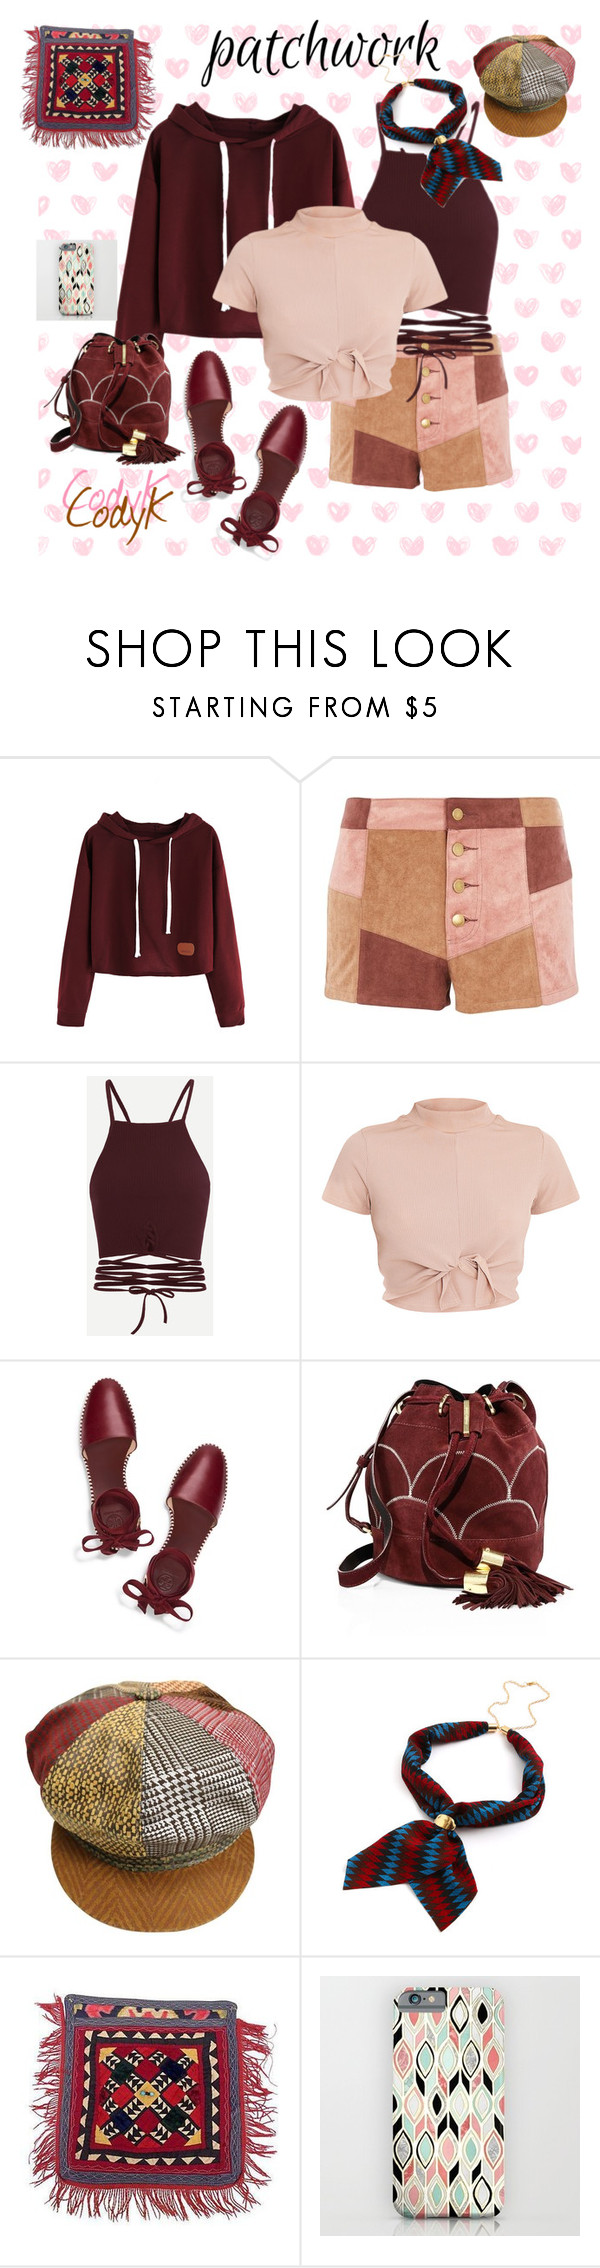 """""""Patchwork"""" by cody-k ❤ liked on Polyvore featuring WYLDR, Tory Burch, See by Chloé and Roberto Cavalli"""